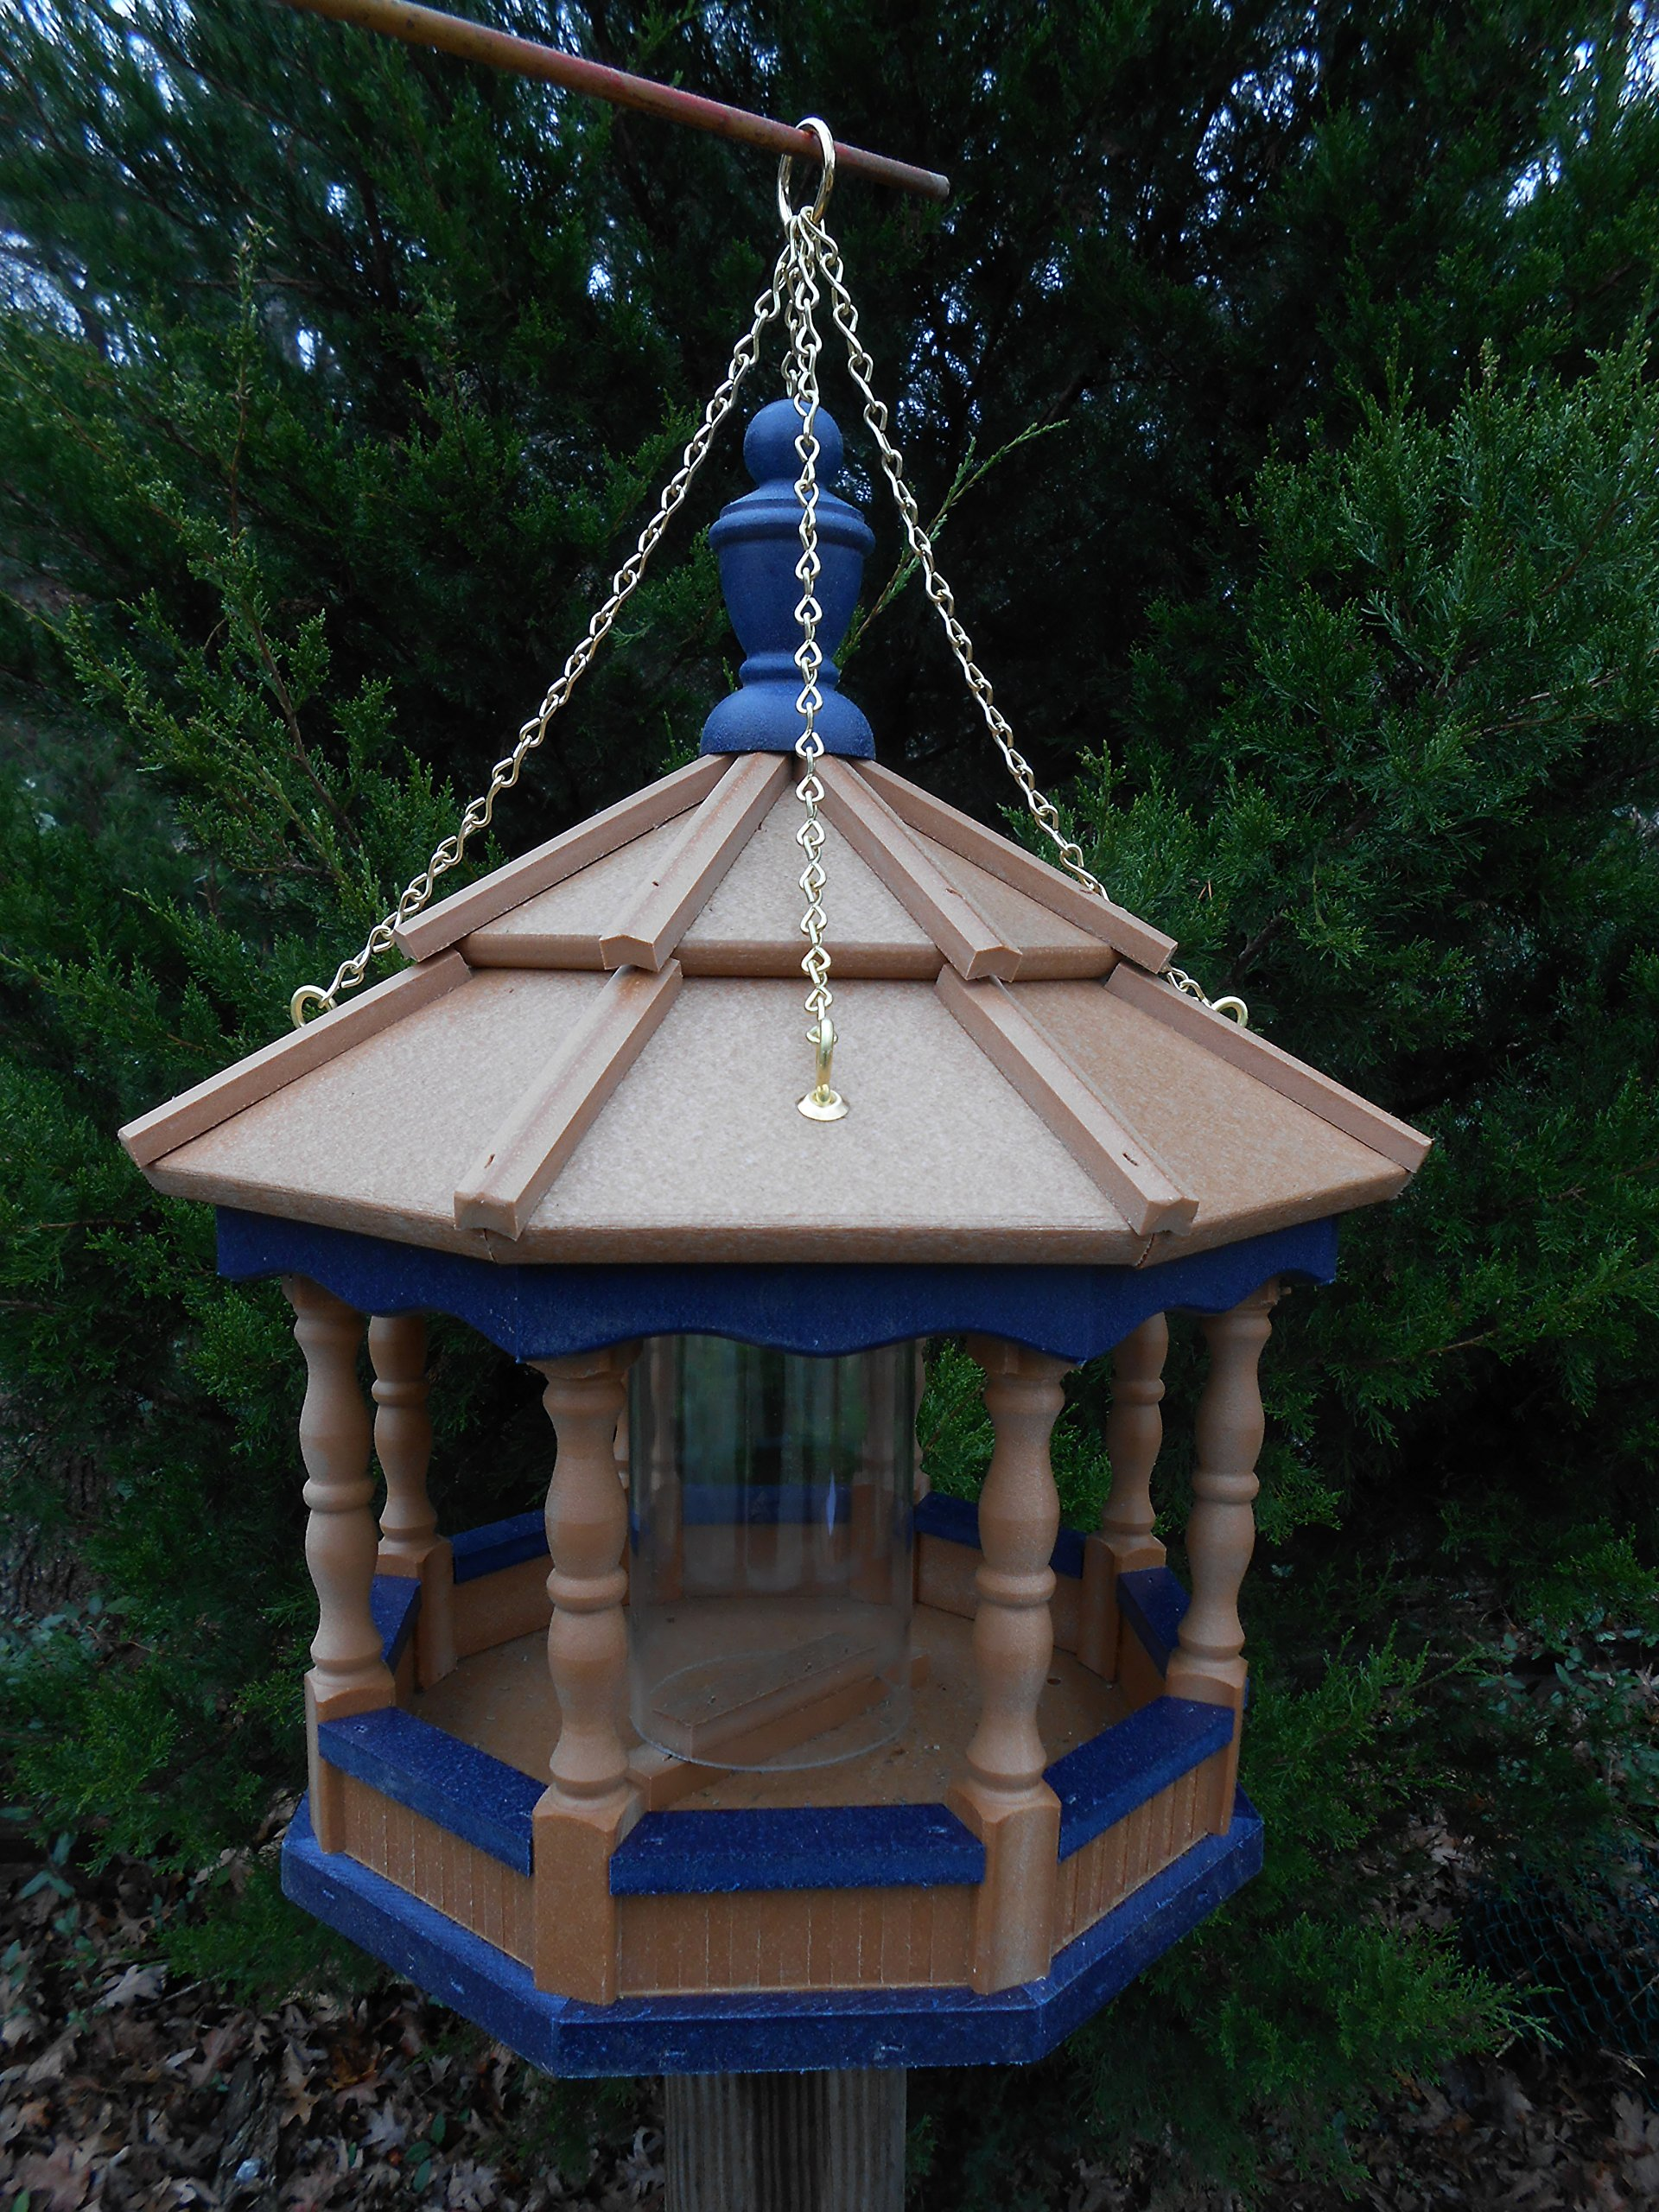 Poly Amish Gazebo Bird Feeder Spindle Hanging w/Chain Yard Handcraft homemade Md